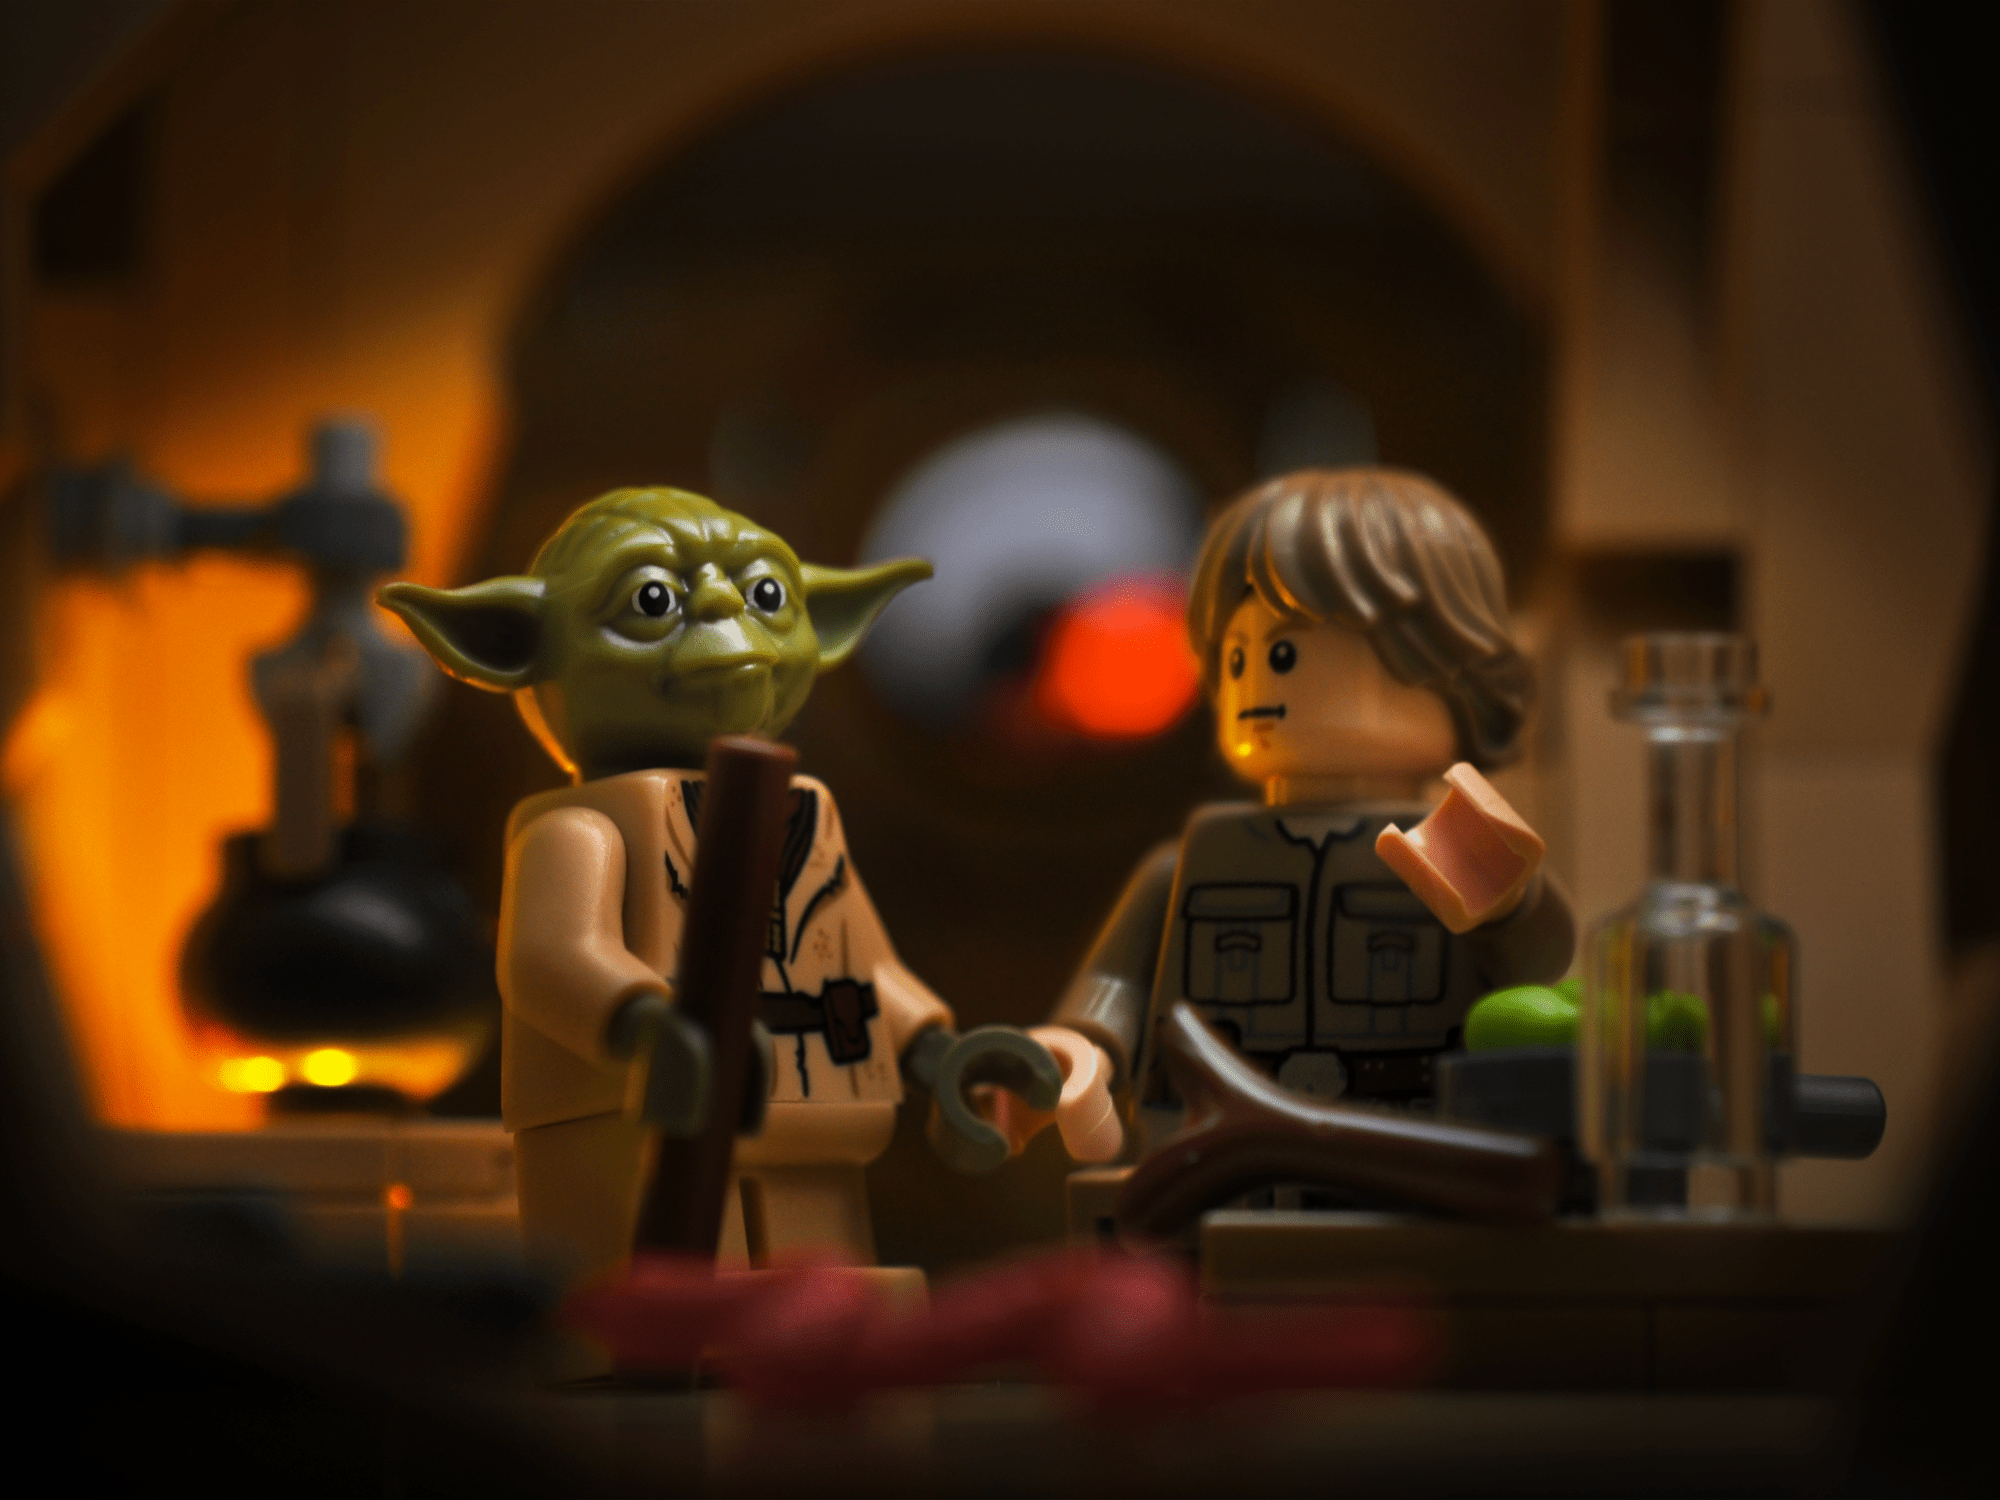 Have you ever wanted to become a Jedi? How about a Lego Jedi? If so, here's a little peek into their Lego training spots.